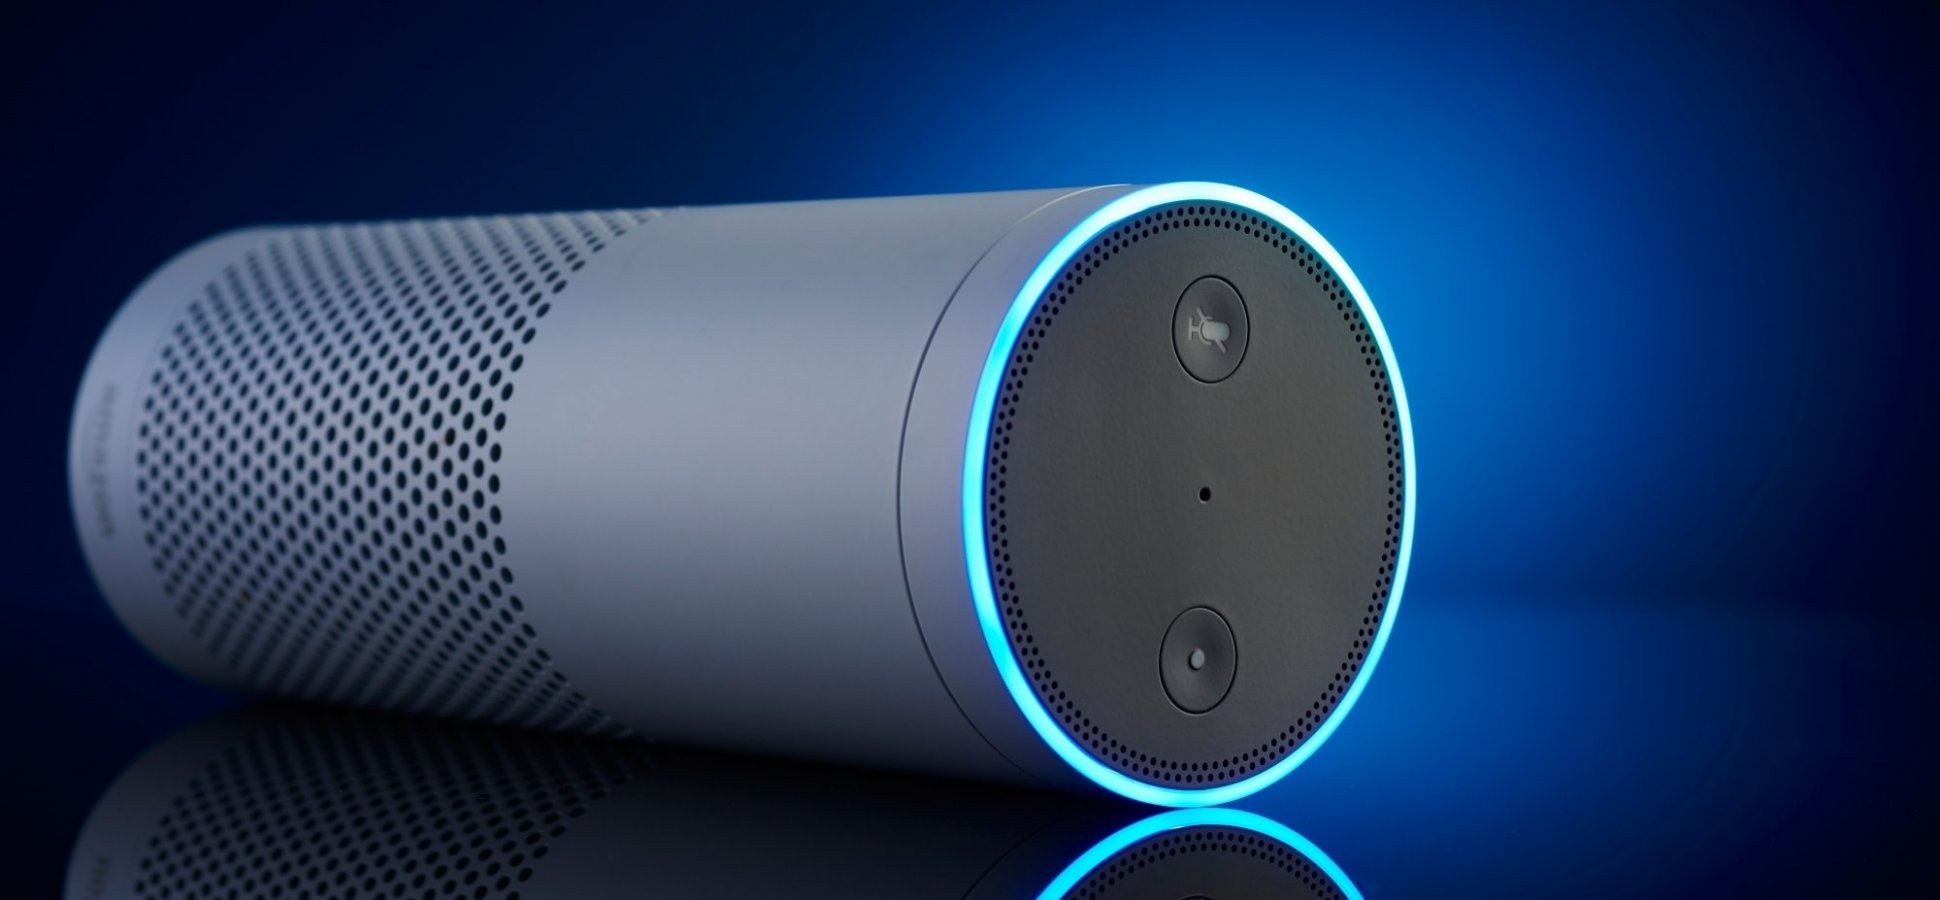 Amazon Says Alexa Will Get Smarter With Age. Her